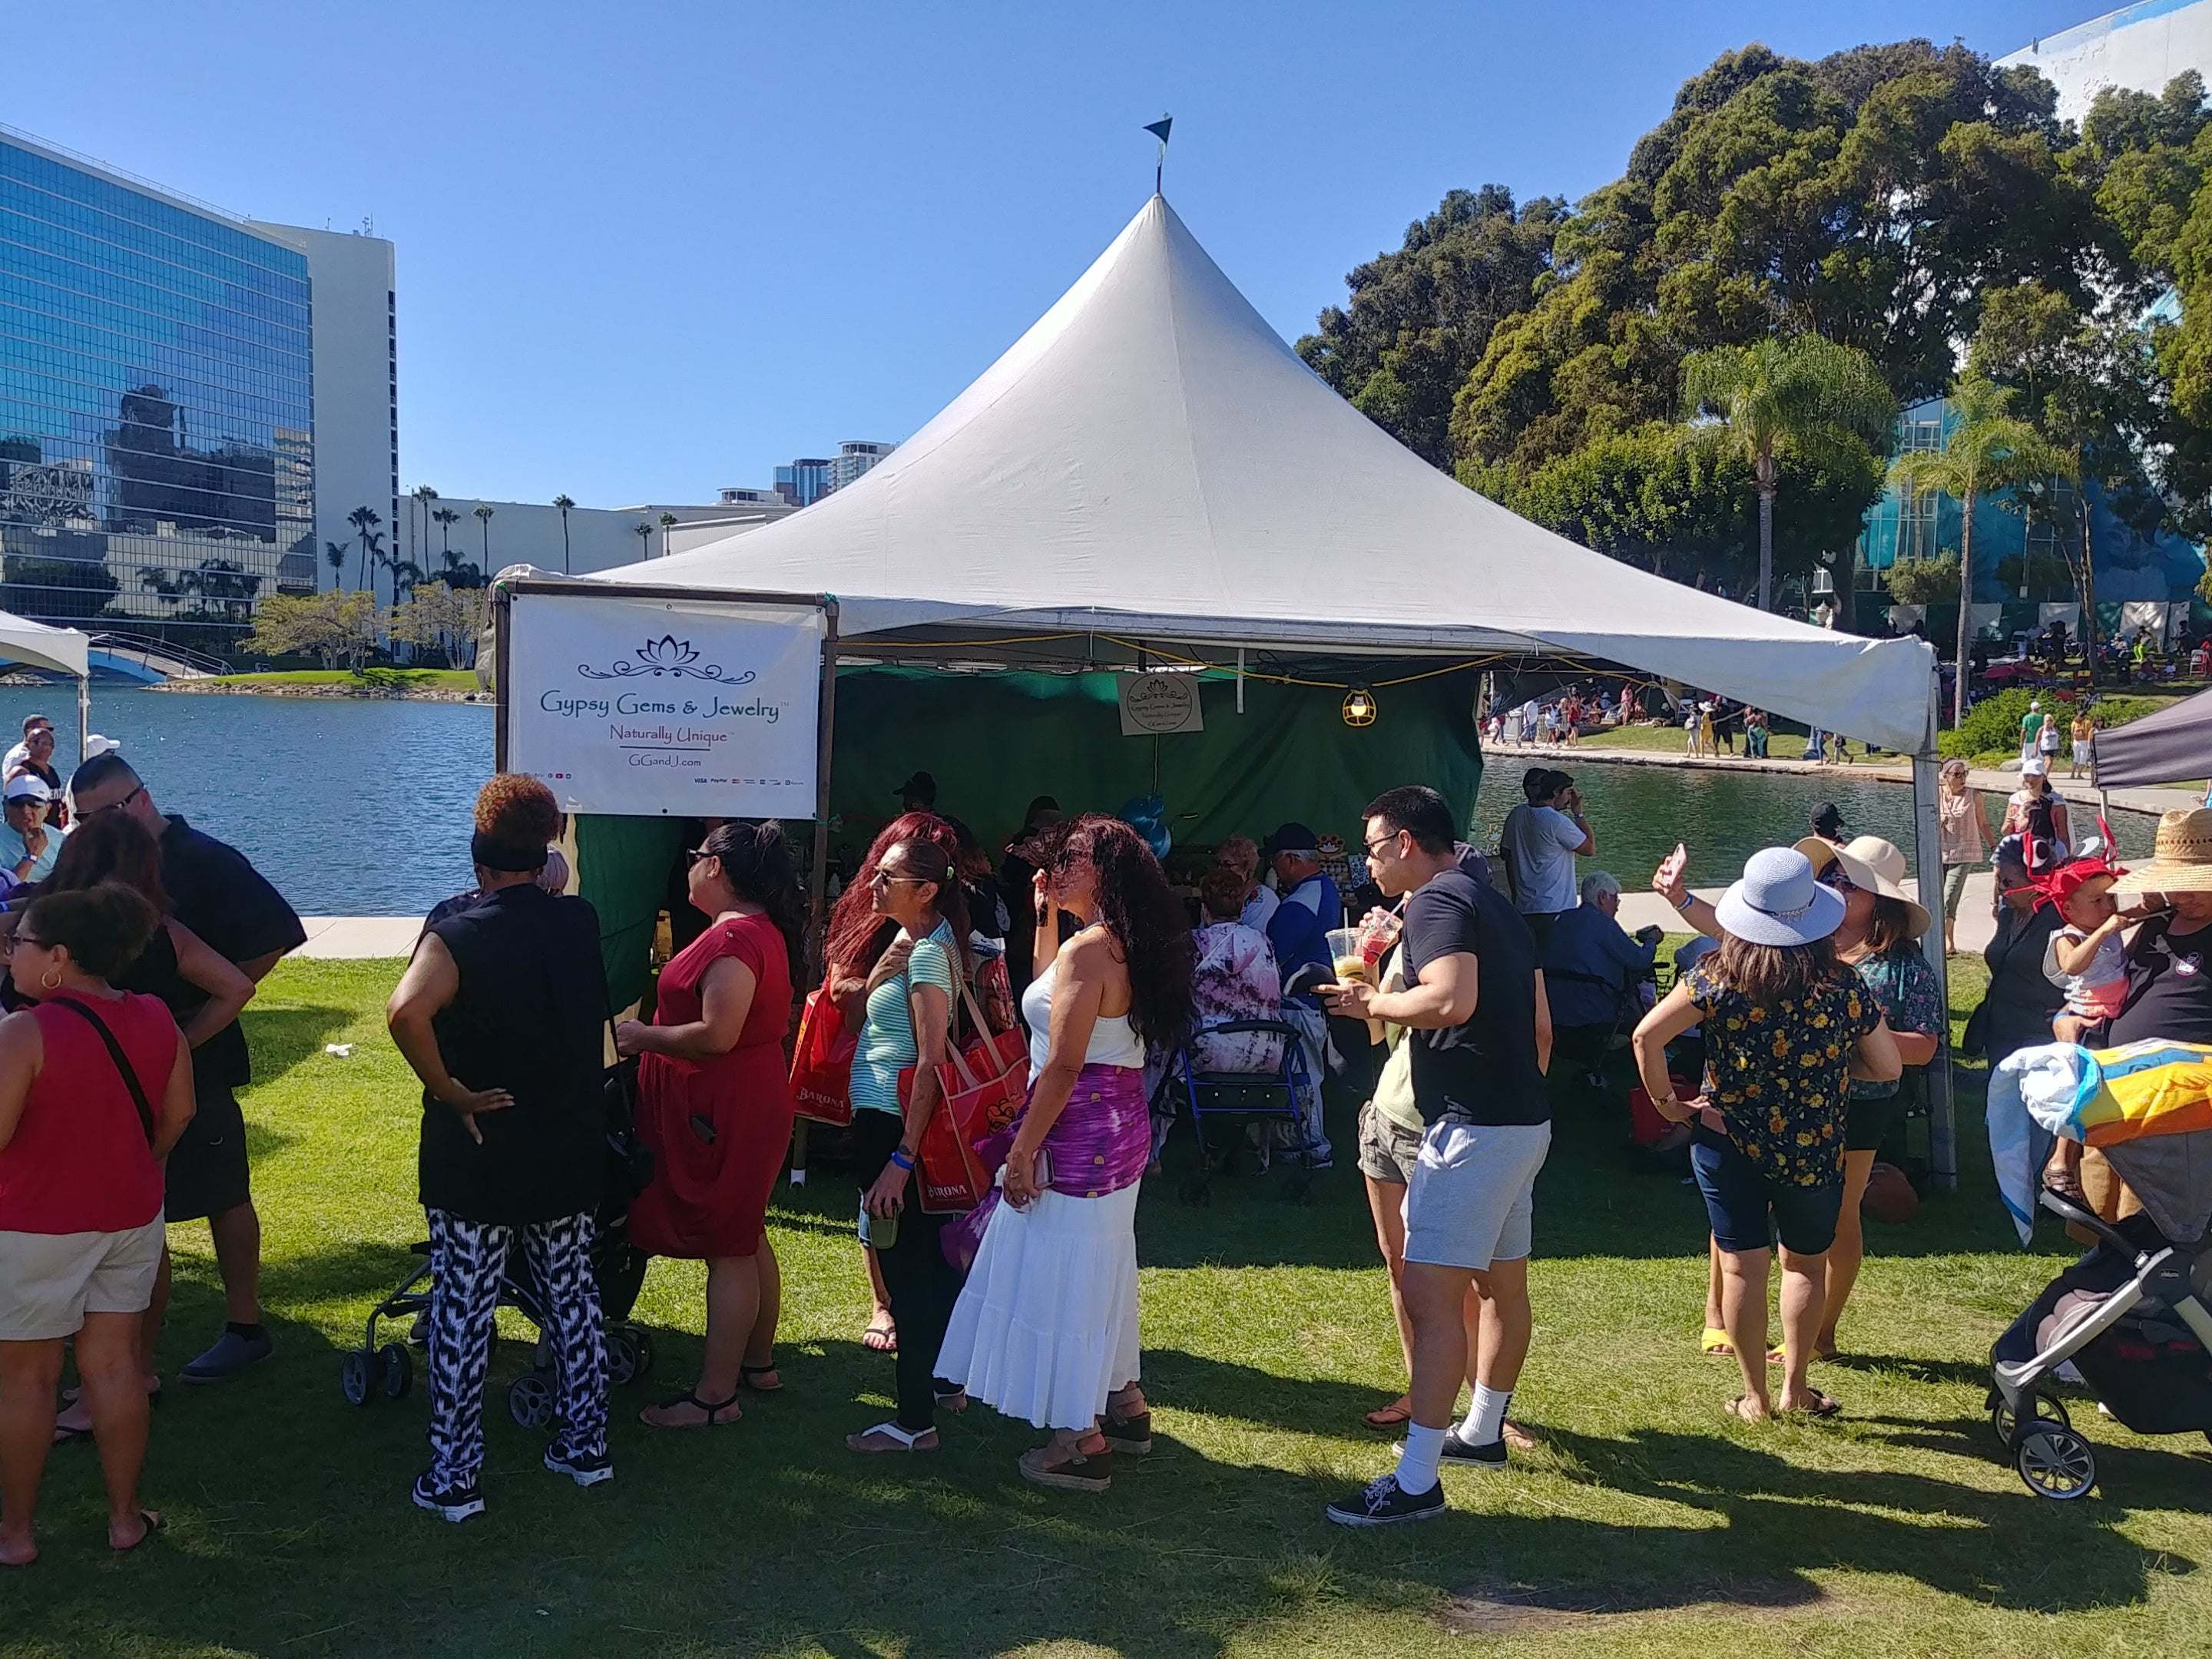 Original Lobster Festival Long Beach Rainbow Lagoon Park 2019 Gypsy Gems